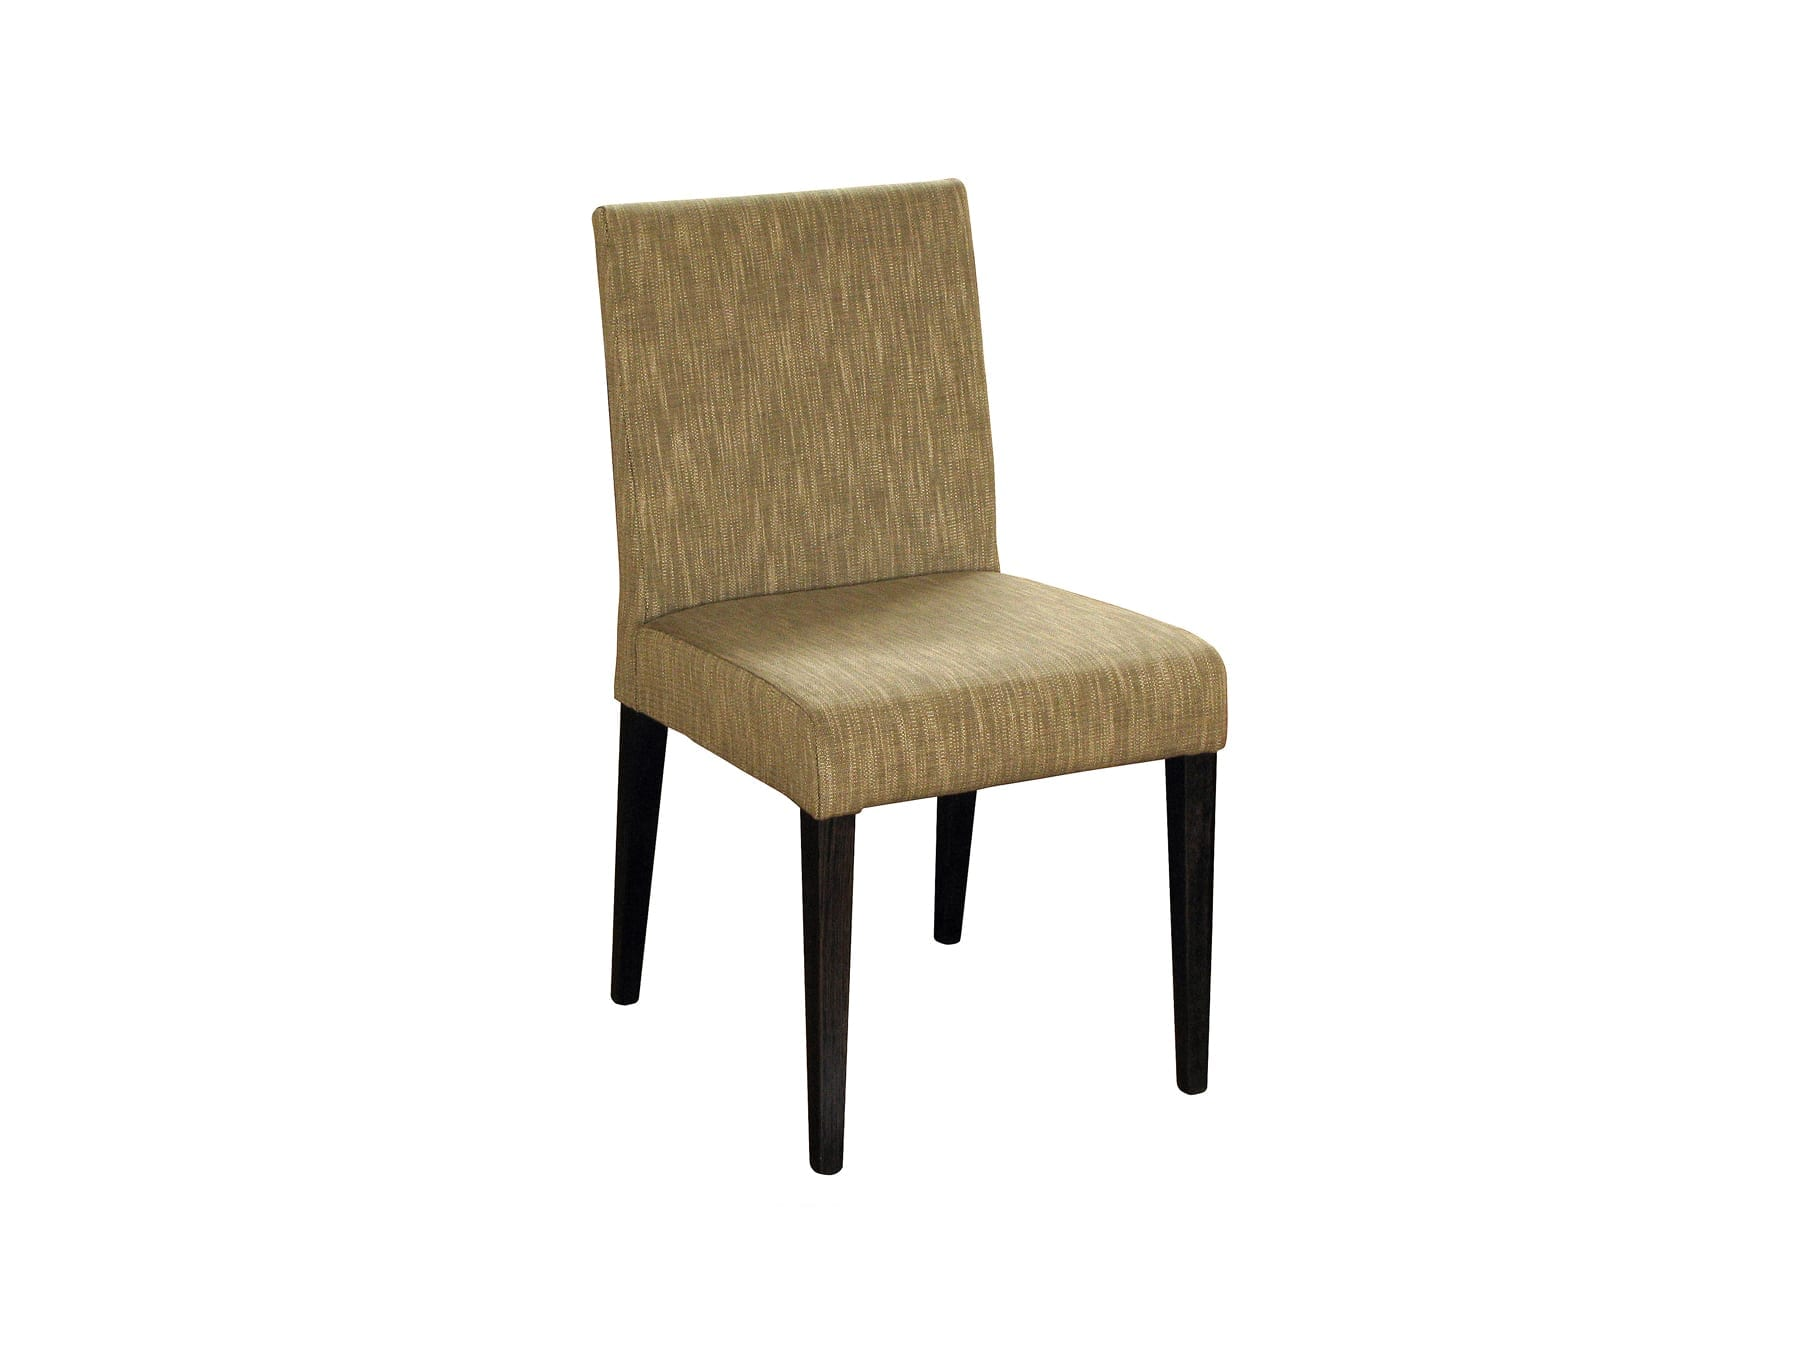 Otago Furniture St Claire Dining Chair